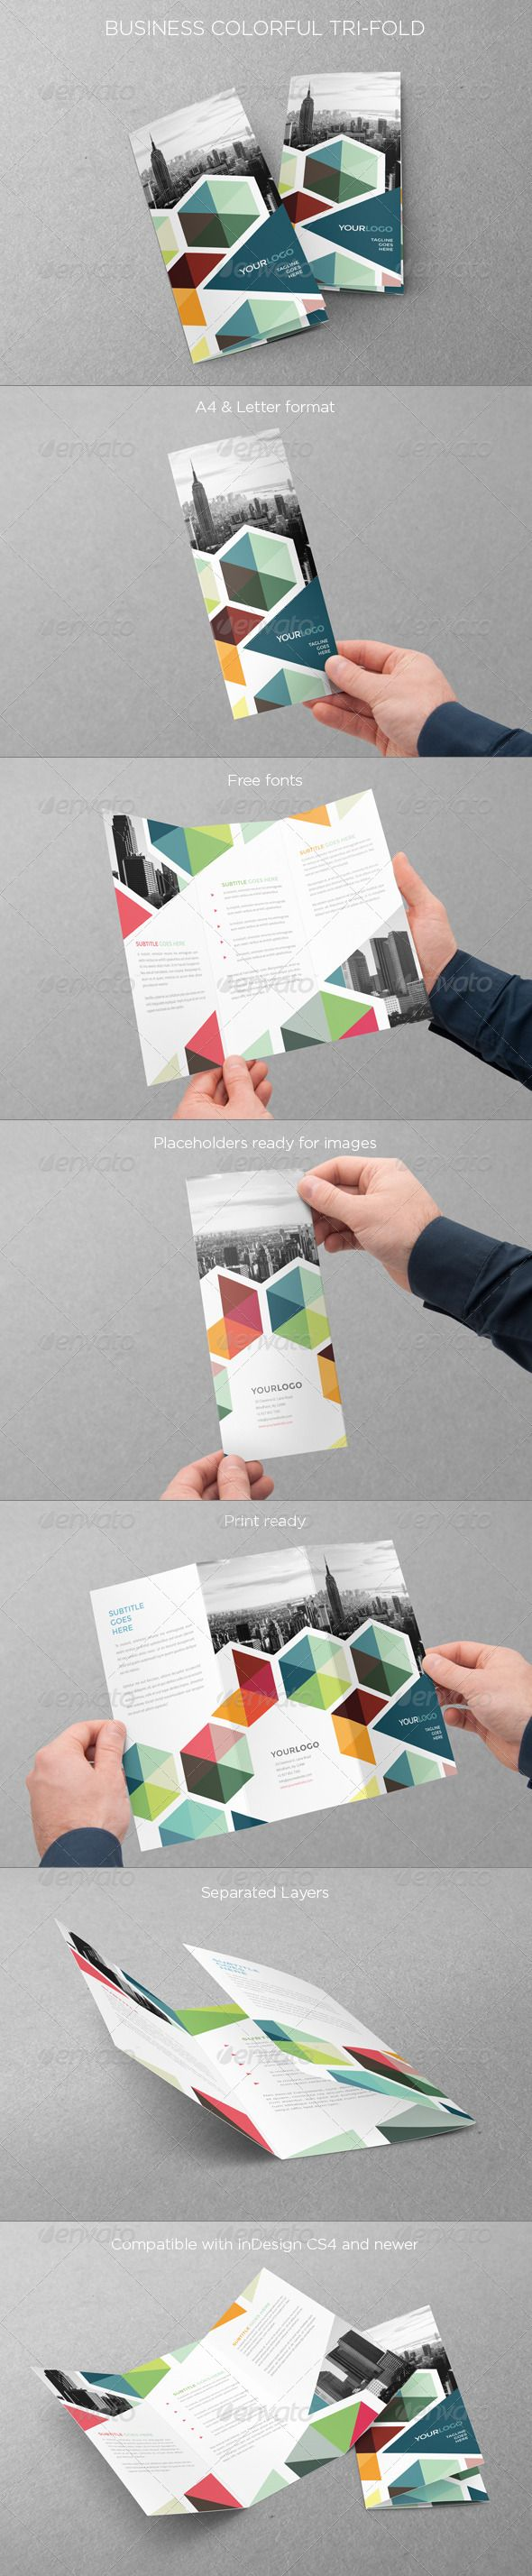 business colorful trifold indesign templates print templates and